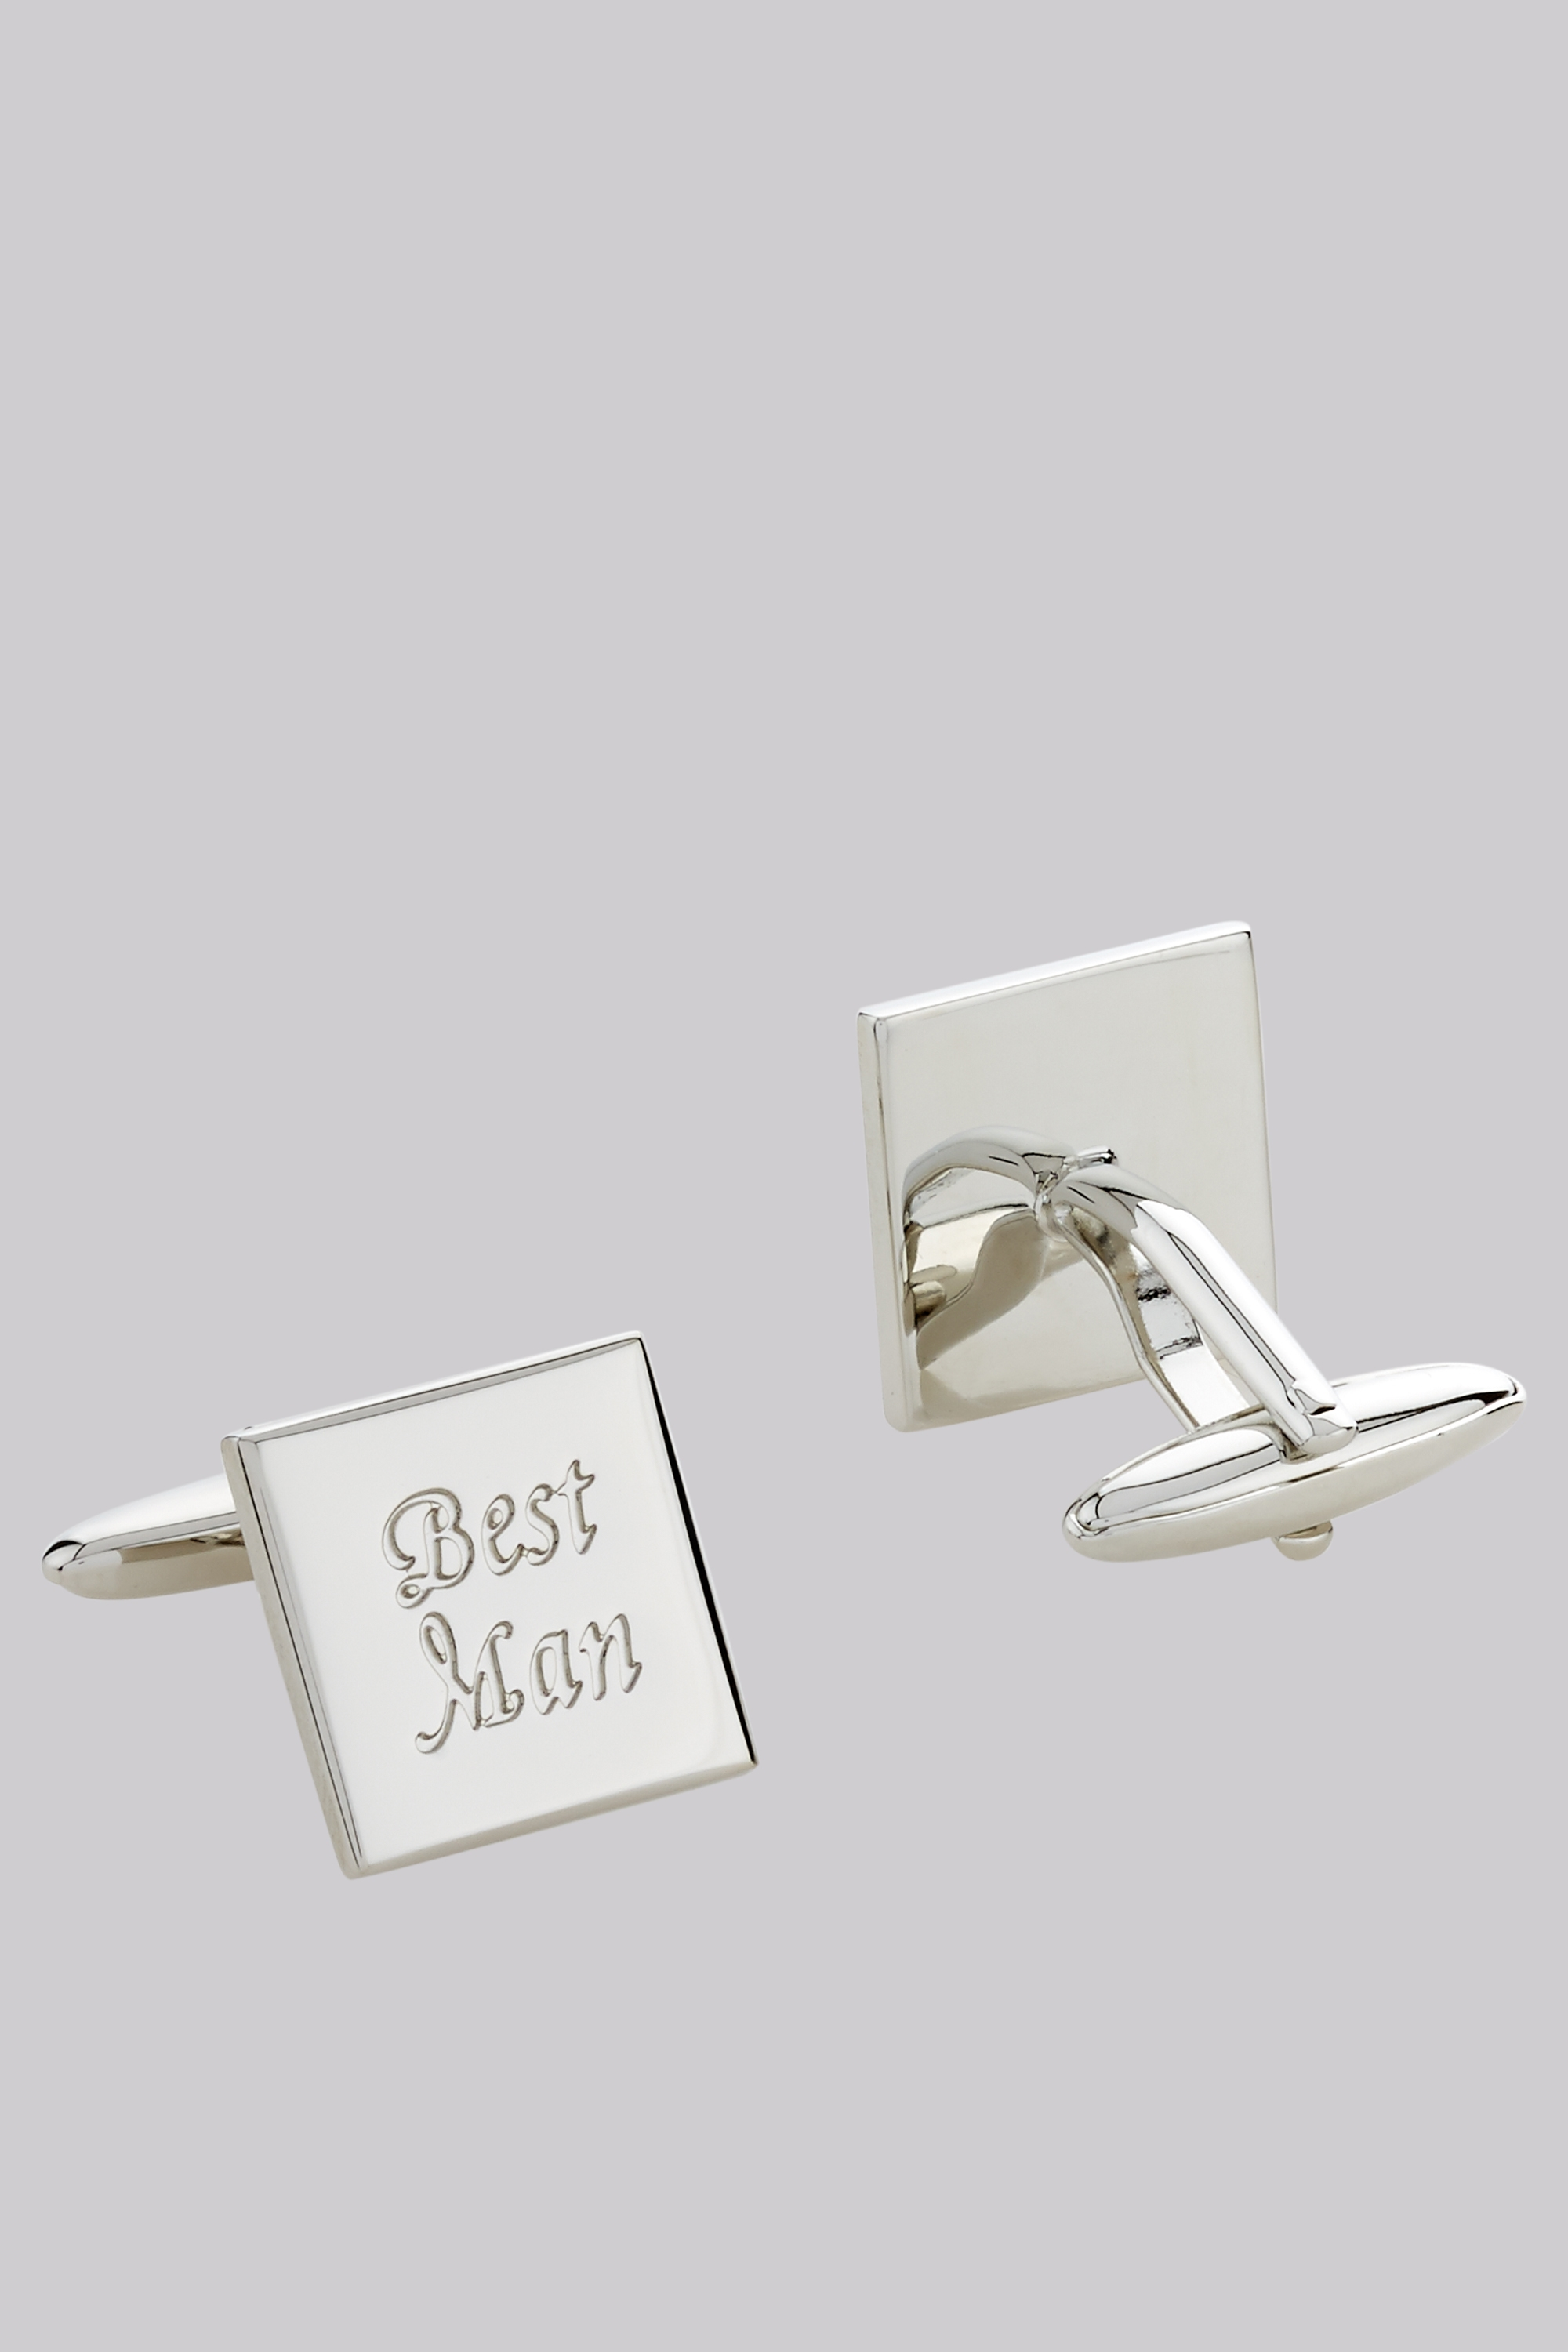 Moss 1851 Silver Best Man Cufflinks By Moss Bros Thread